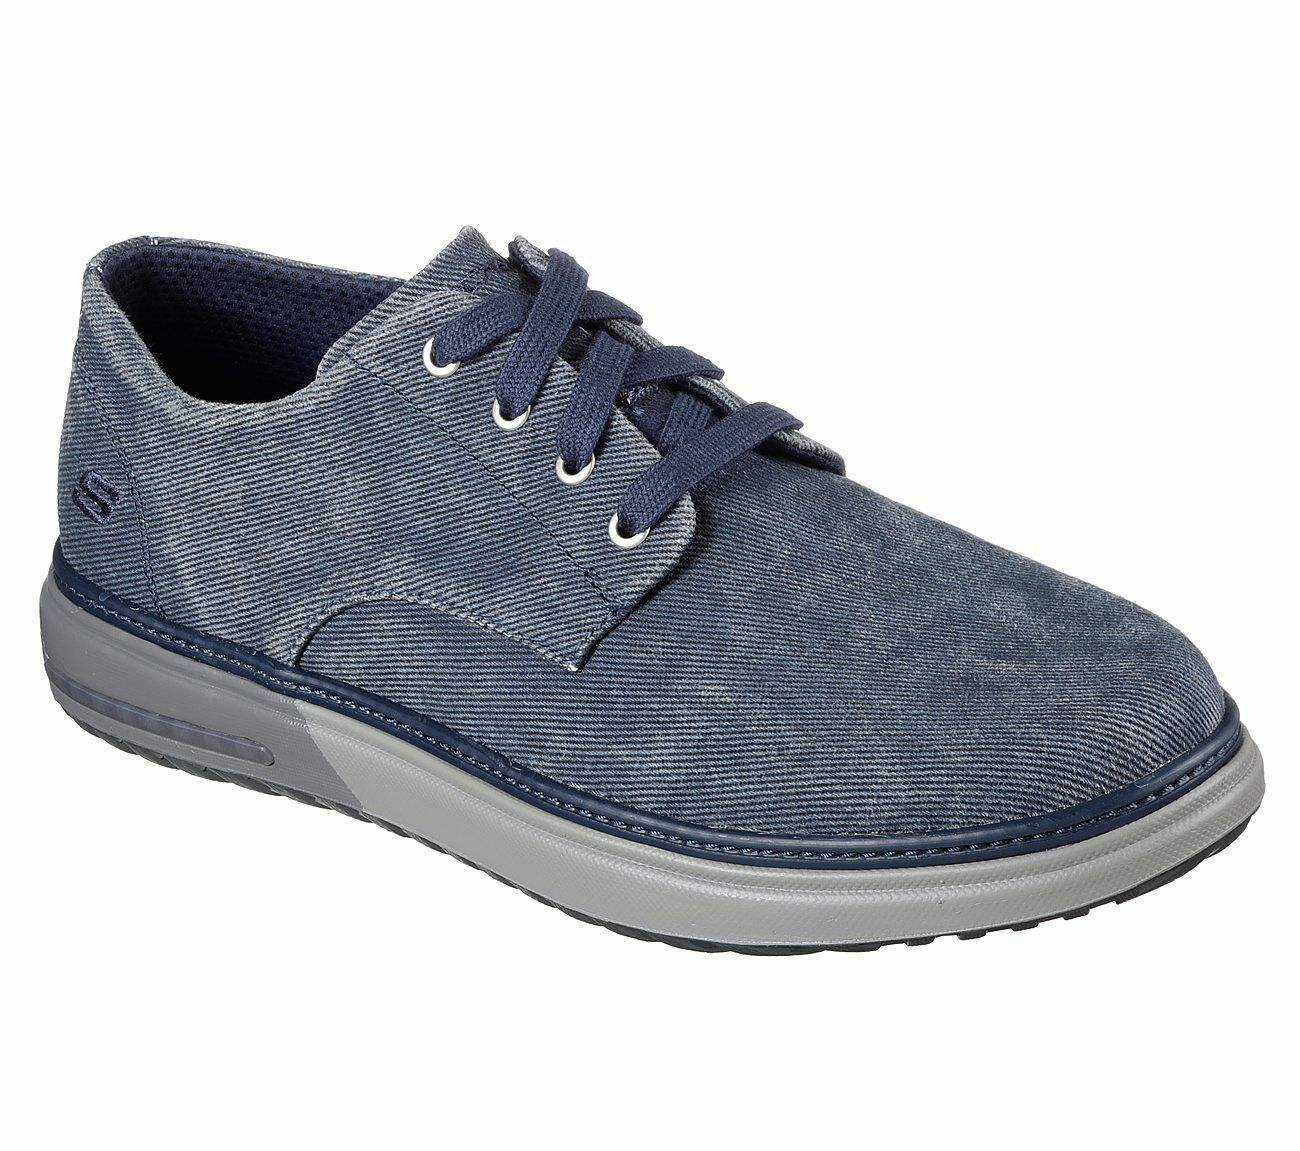 65371 Navy Skechers shoes Men Memory Foam Casual Comfort Soft Canvas Vintage New